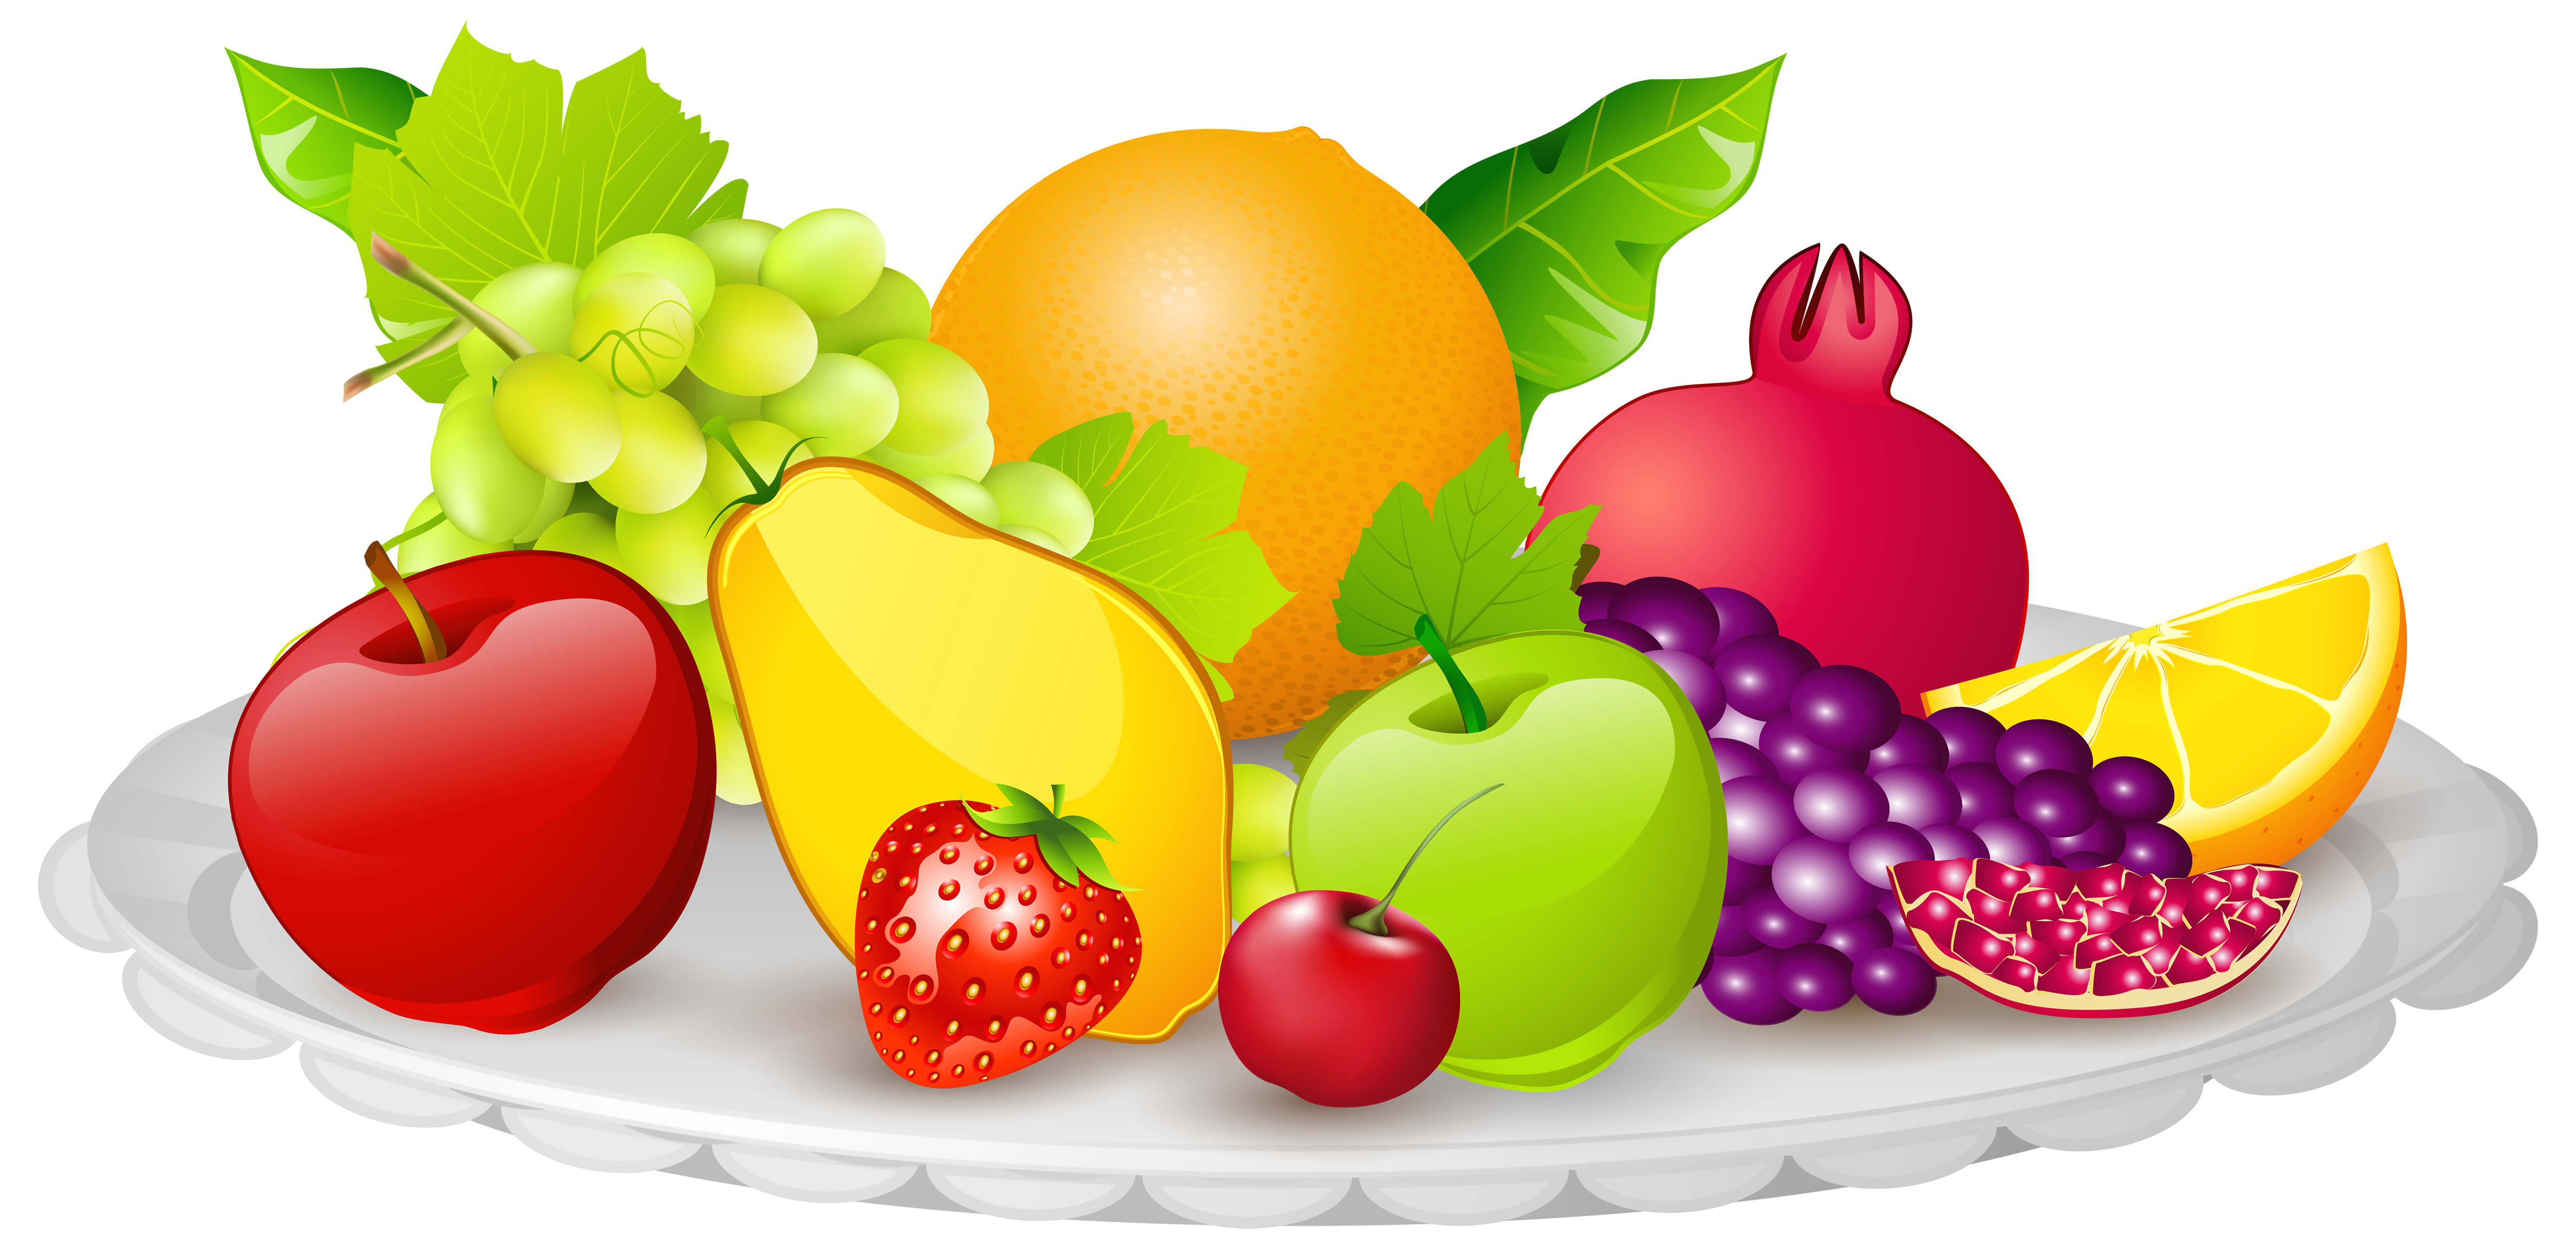 Clipart fruit. Plate with fruits png